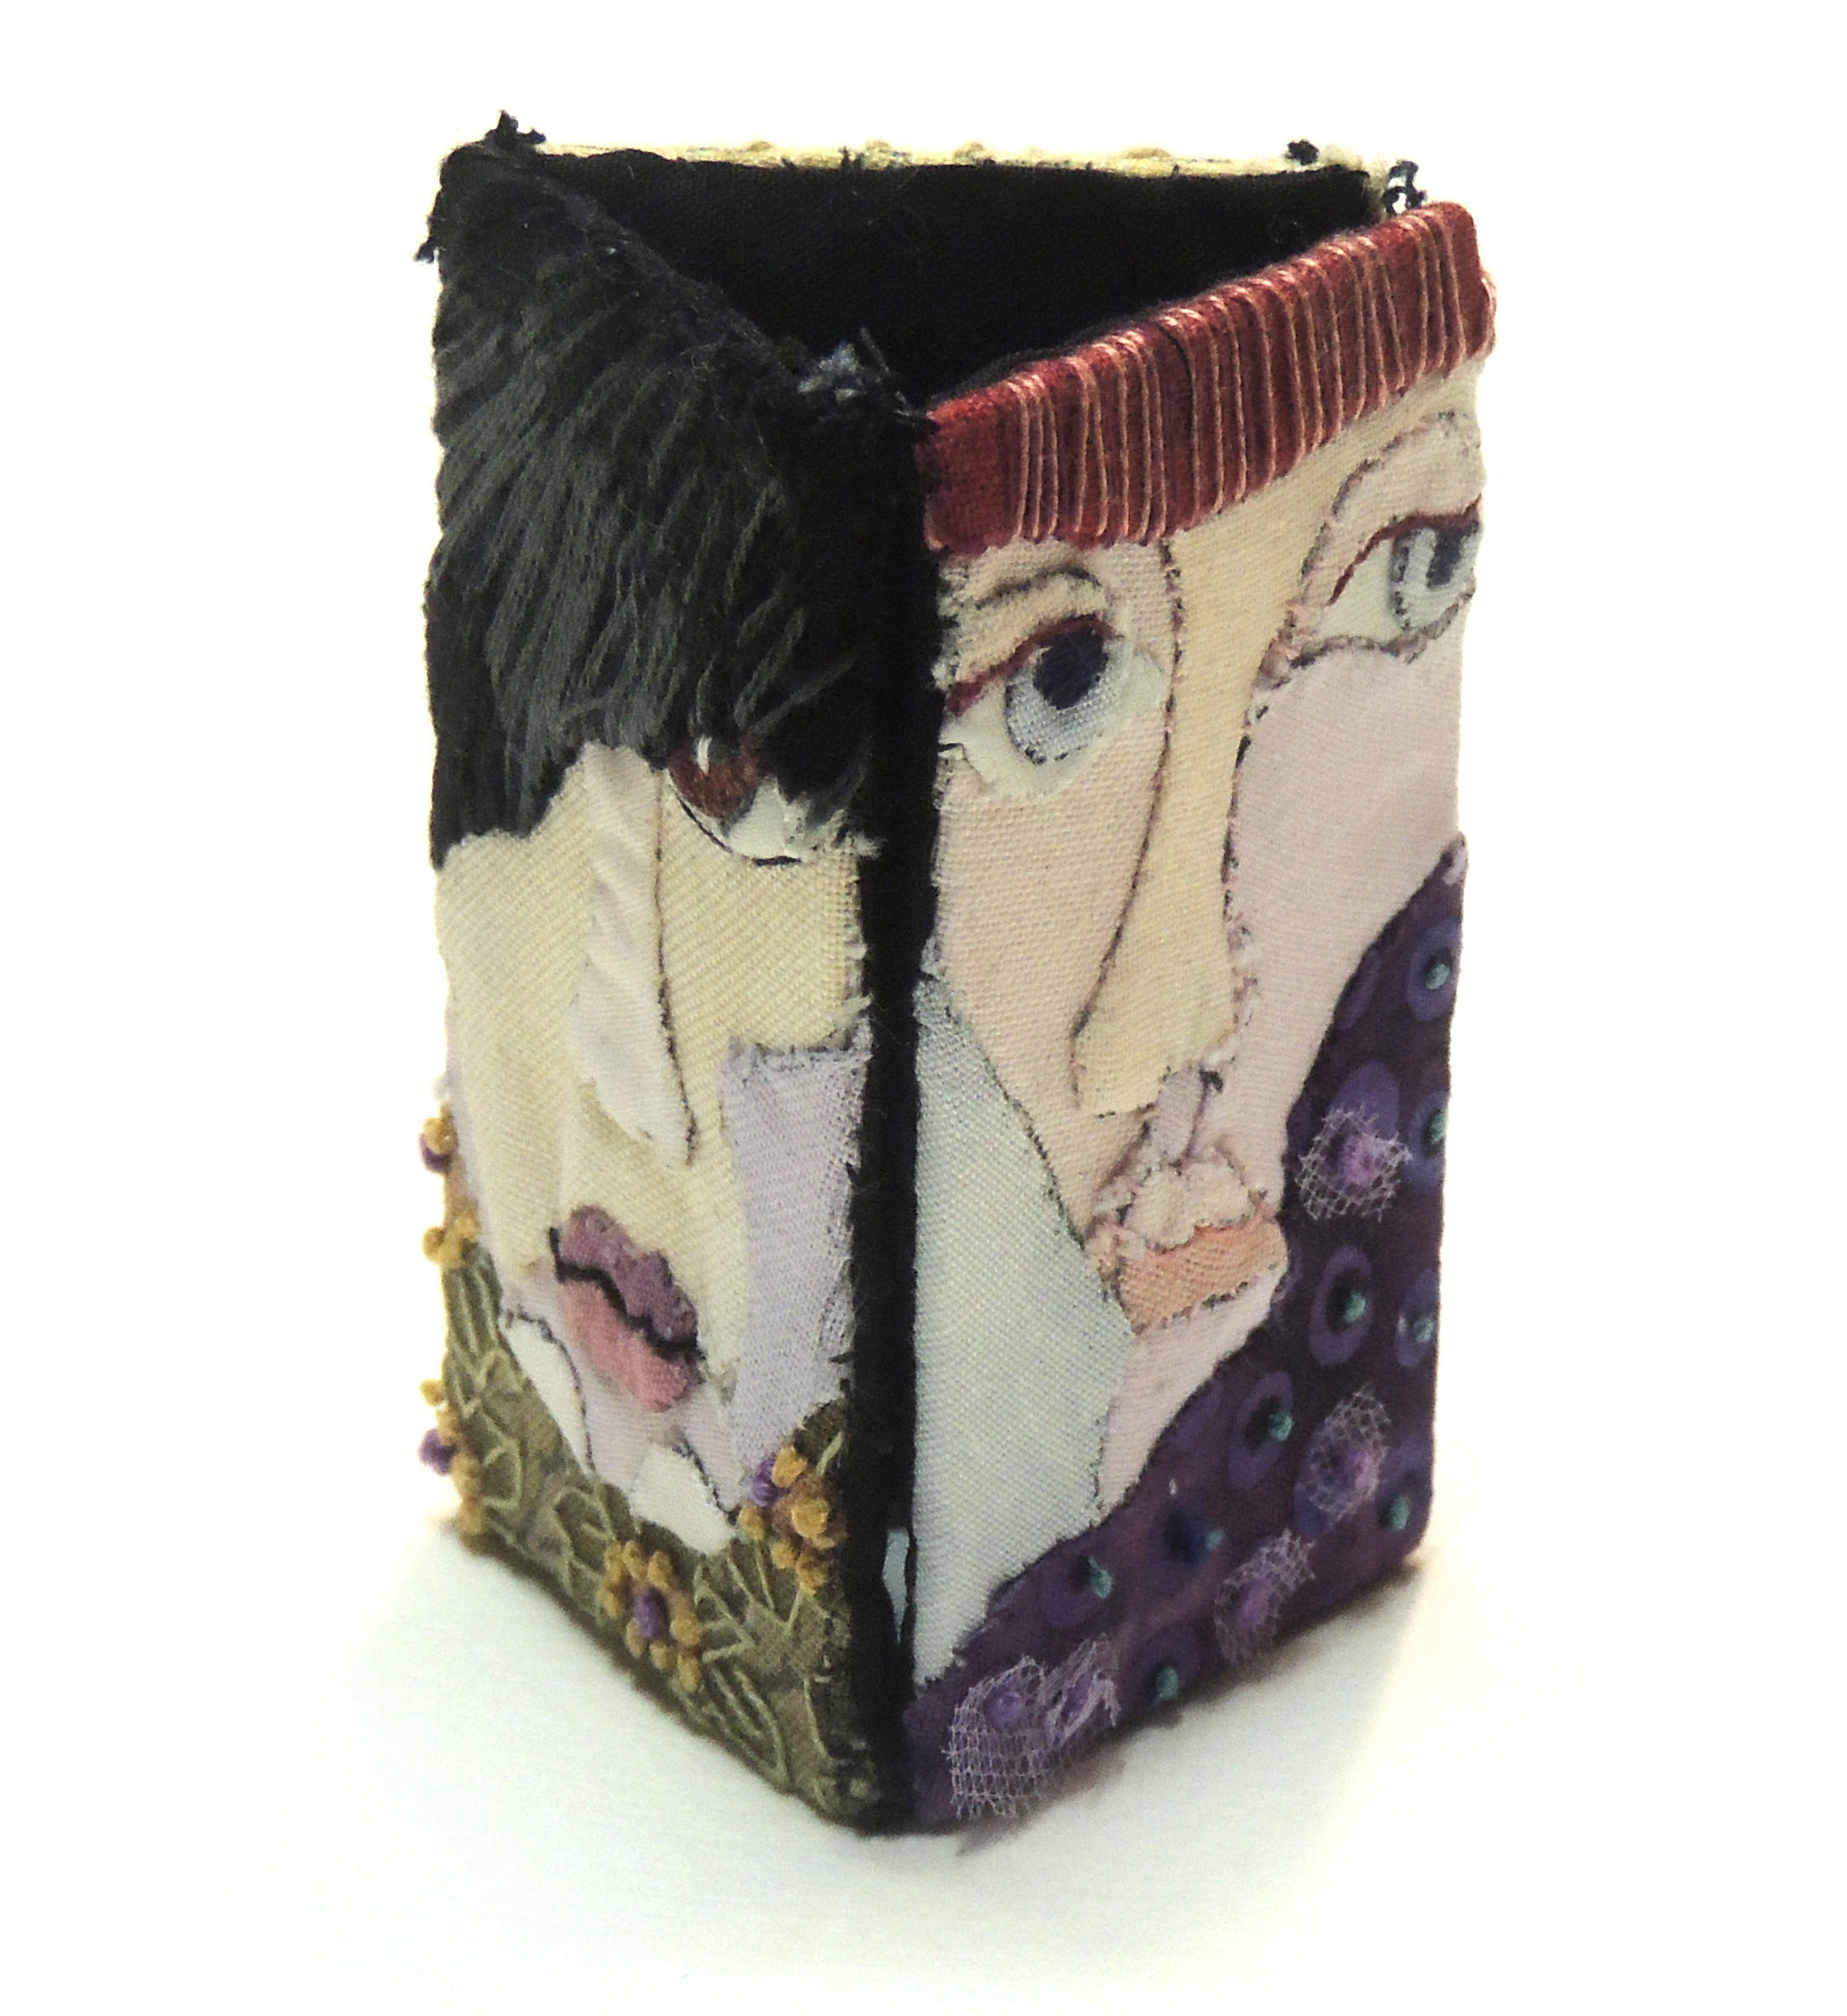 Marianne Rabb Britton | THREE FACES | Fabric & Embroidery | 3 x 1.75 x 1.75"